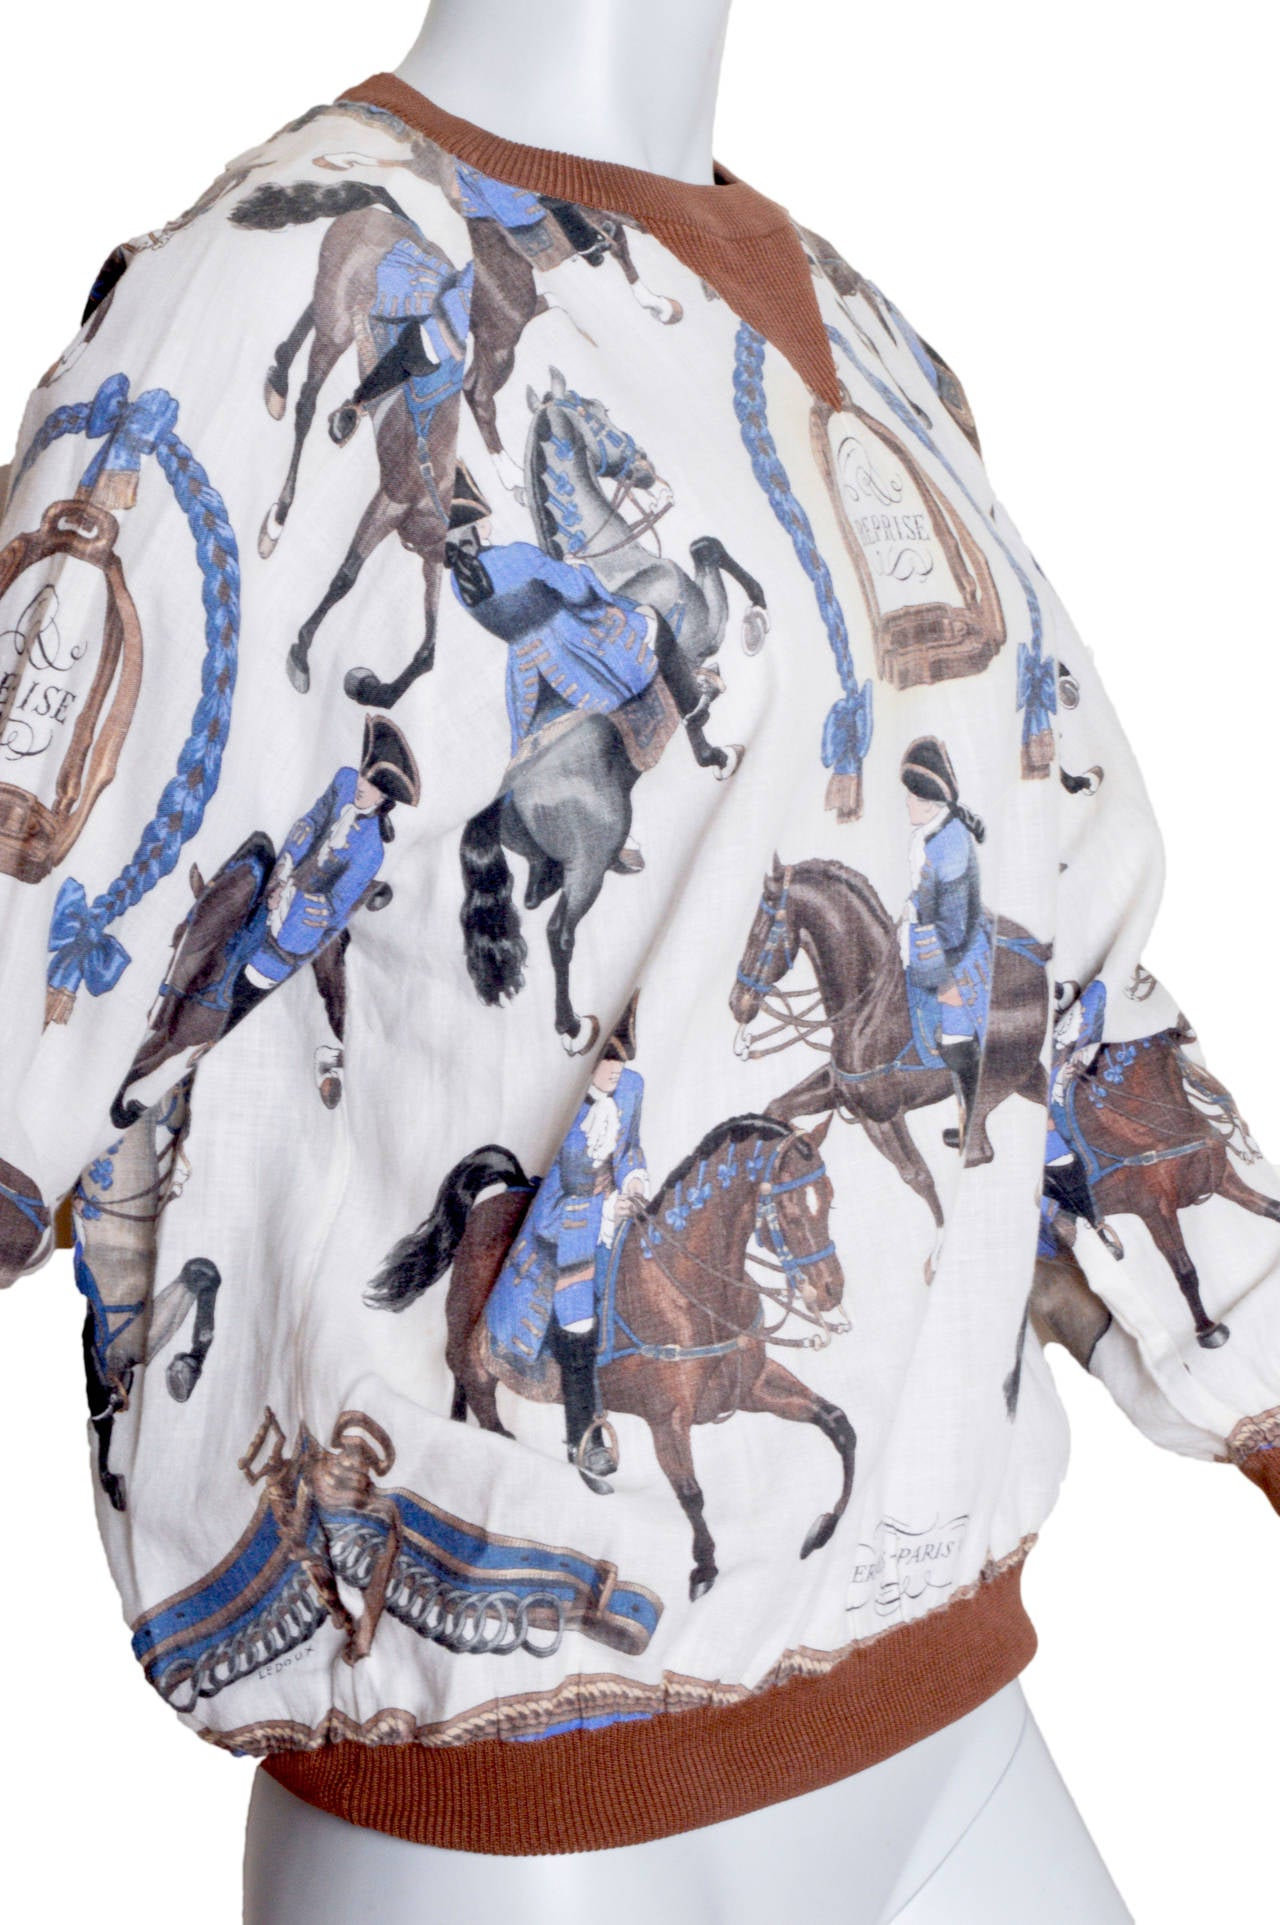 Hermes Equestrian Scarf Print Blouse 3